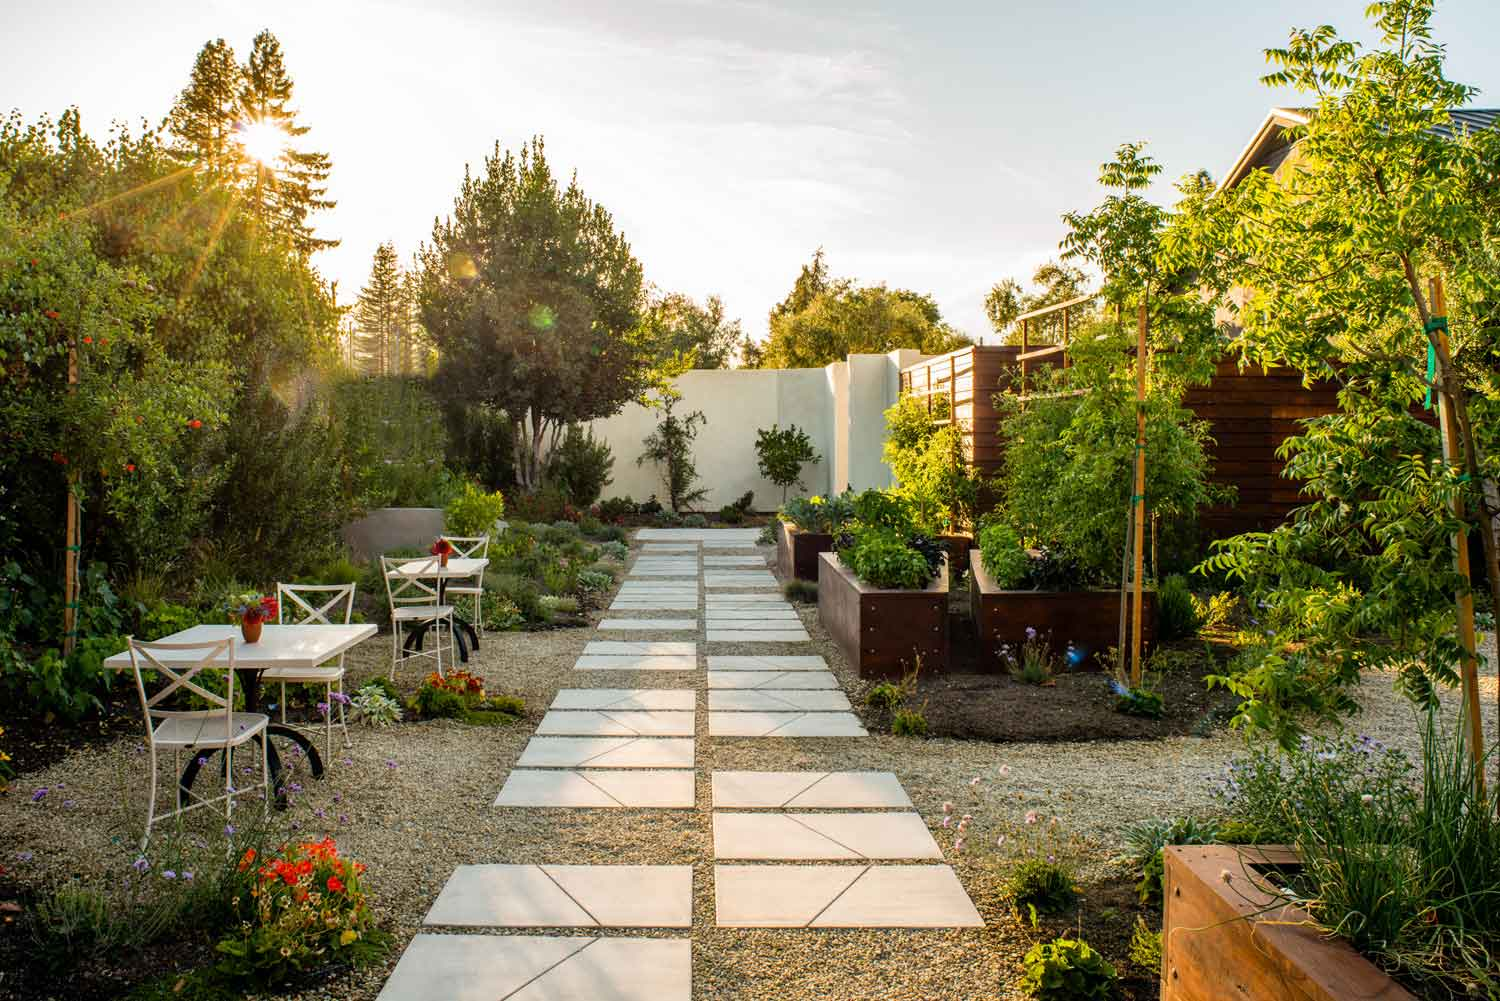 The Garden Path at Catelli's